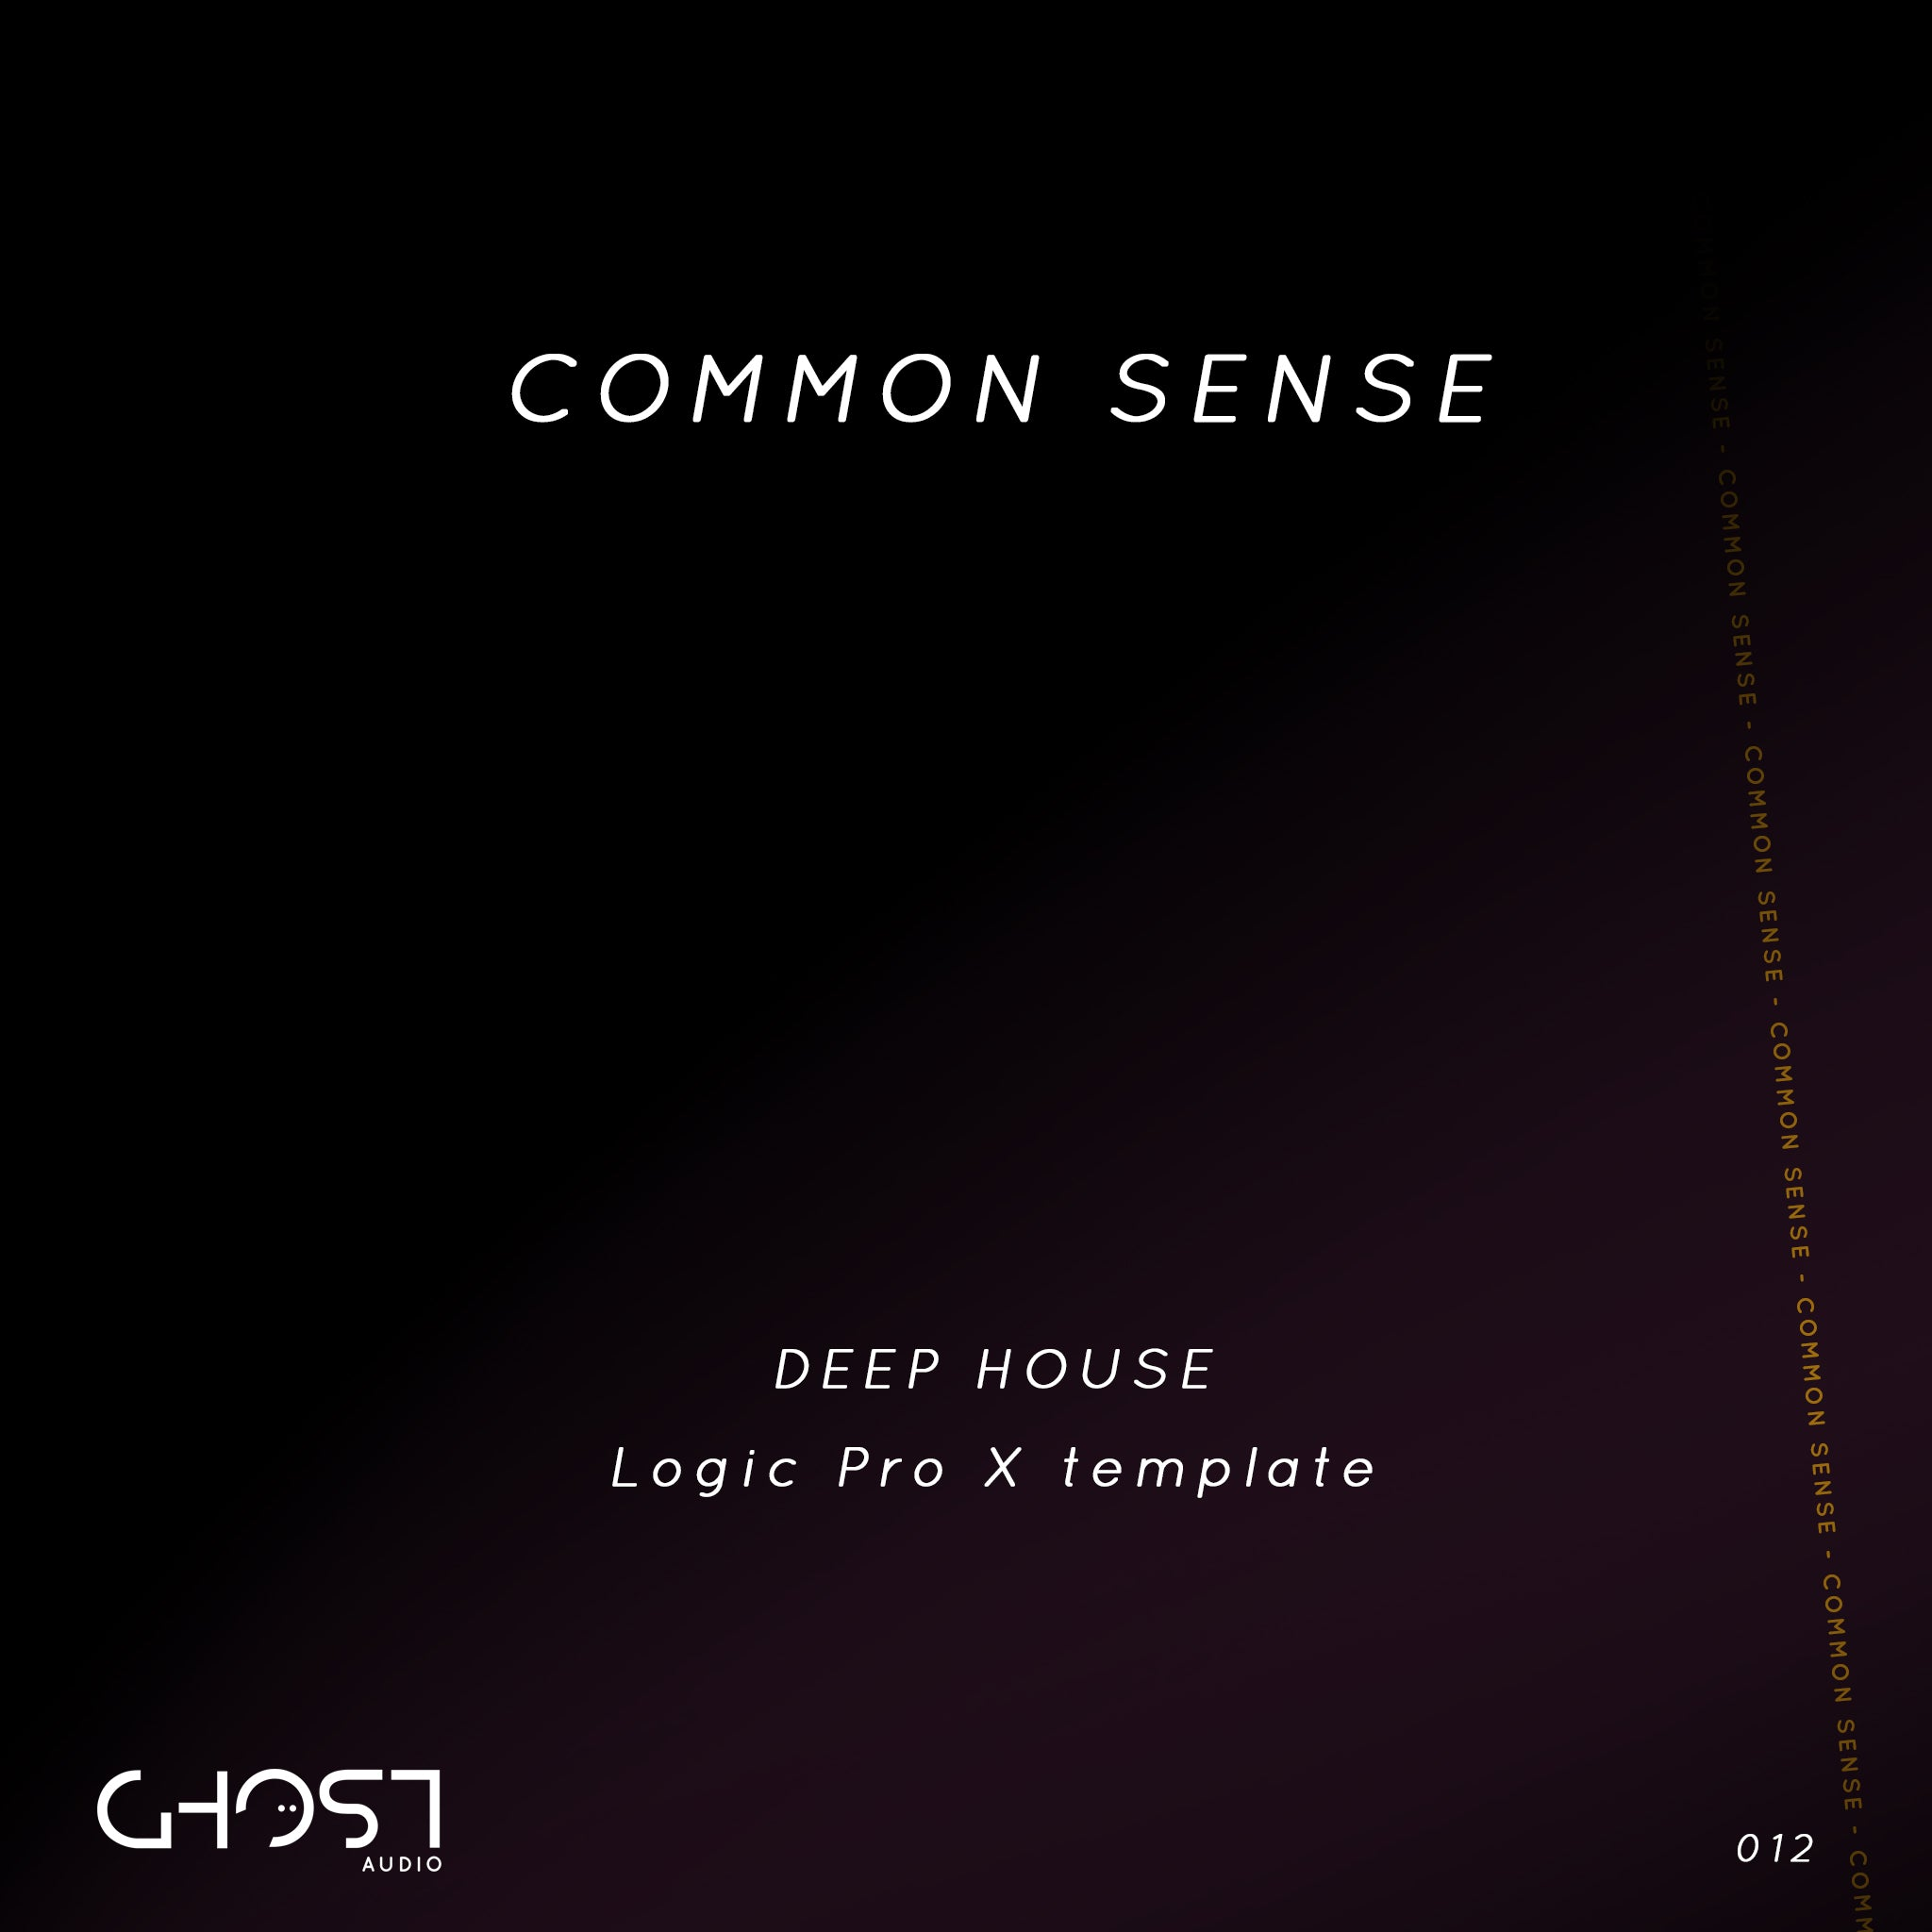 COMMON SENSE - DEEP HOUSE ( LOGIC PRO X TEMPLATE )